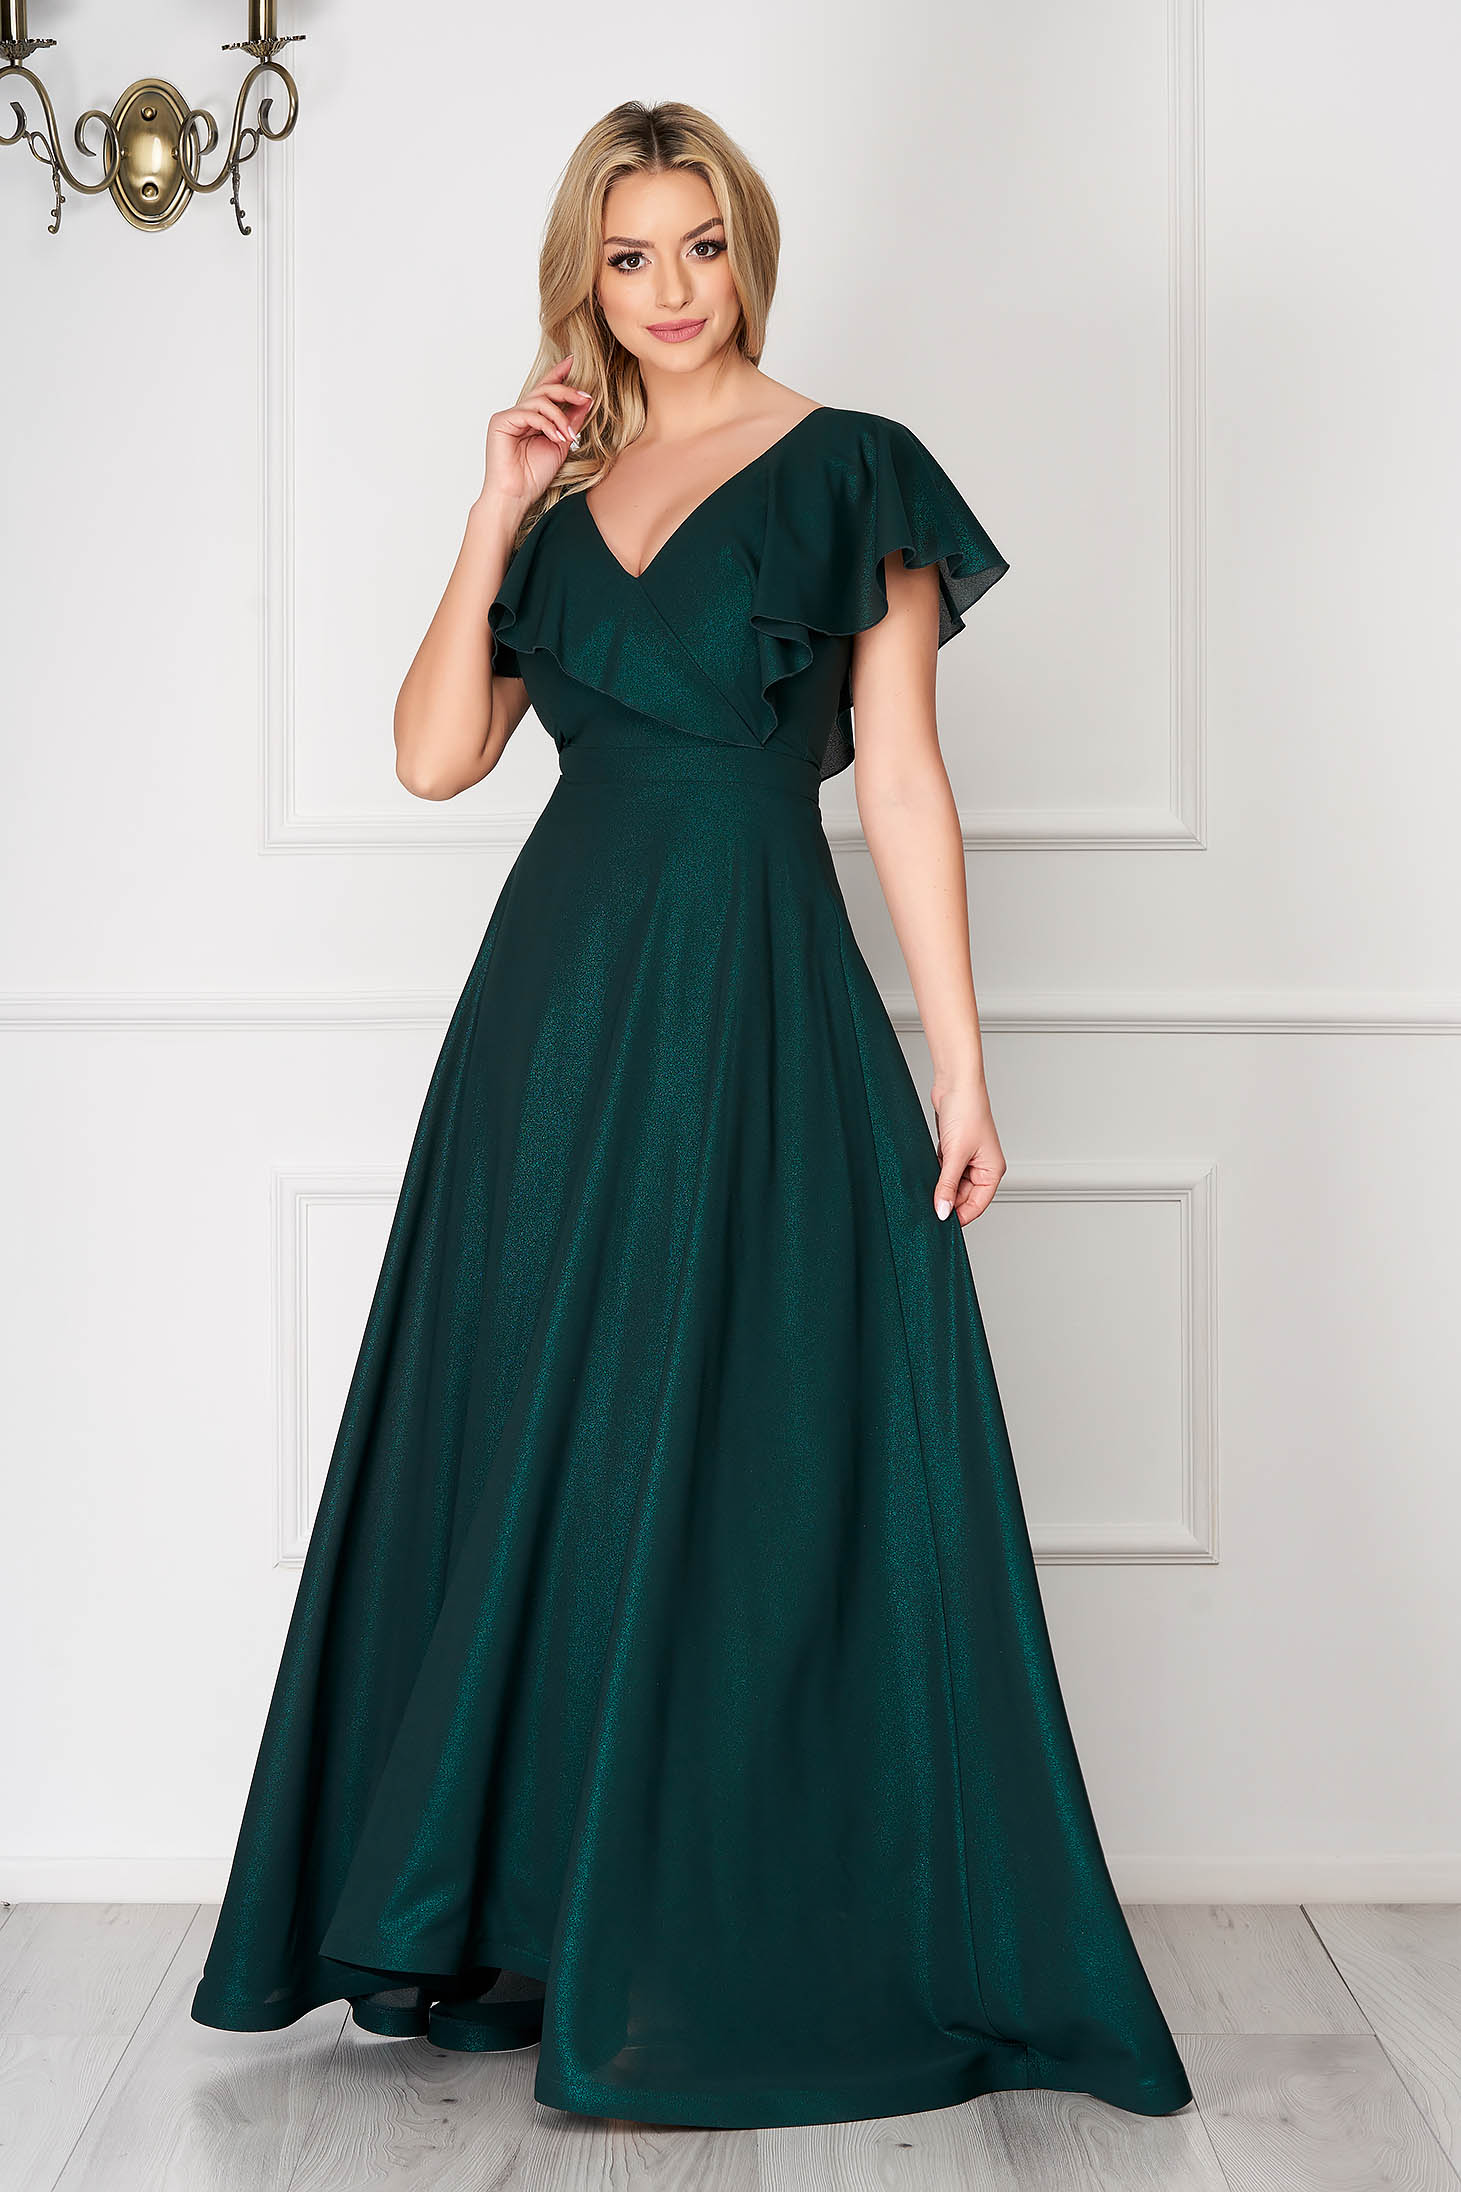 Dress StarShinerS green occasional flaring cut frilly trim around cleavage line from veil fabric